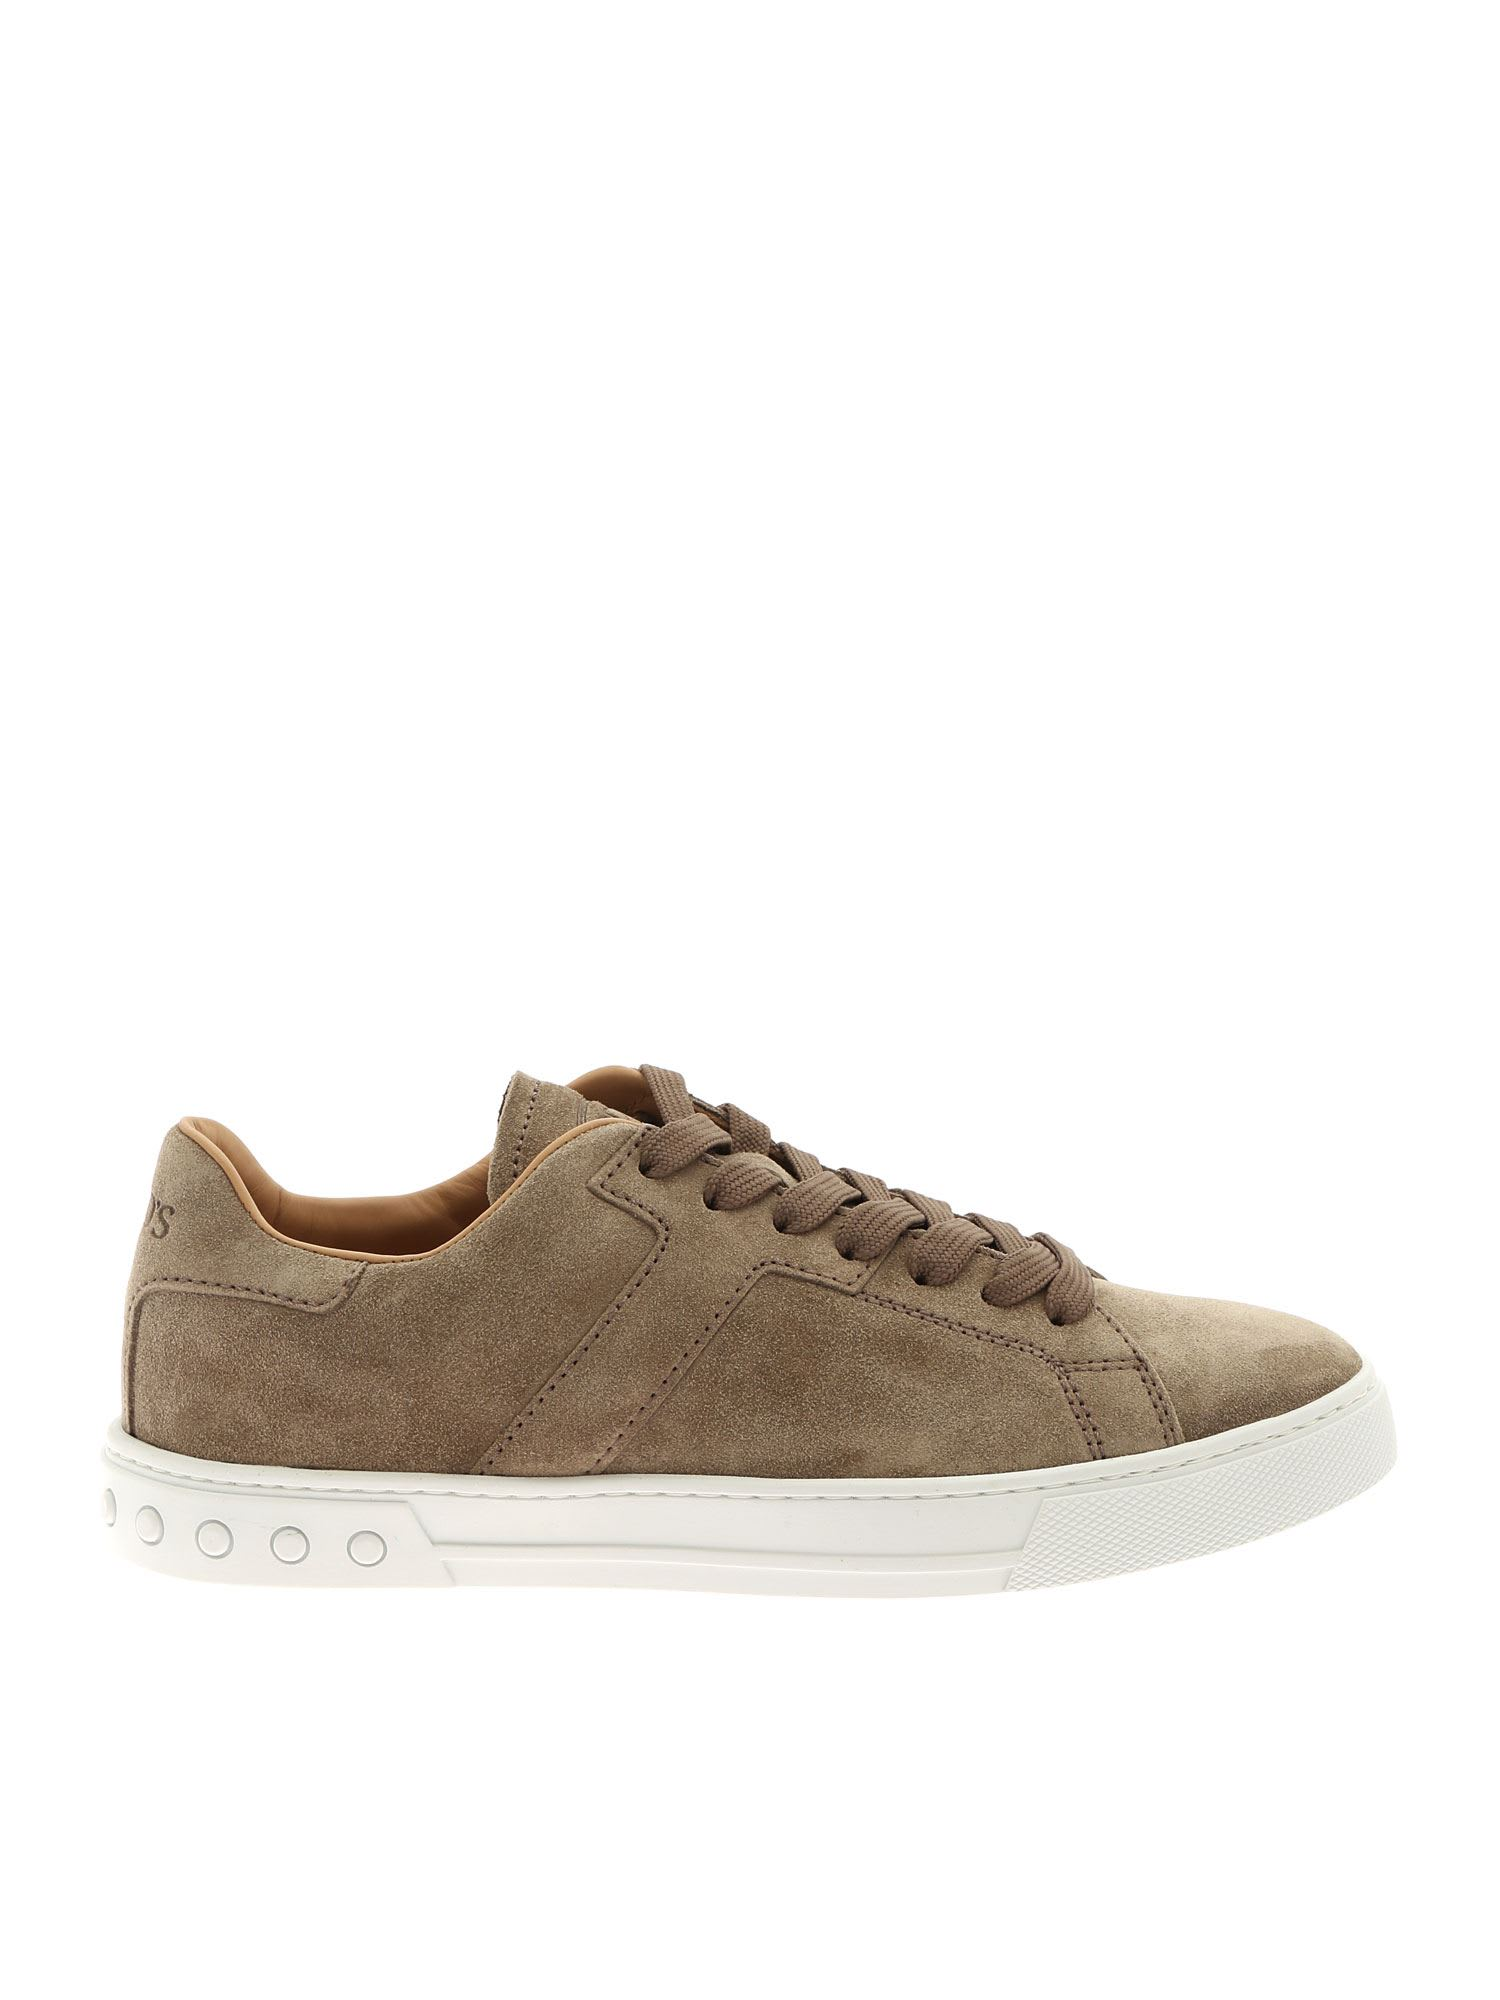 Tods Laced Shoes